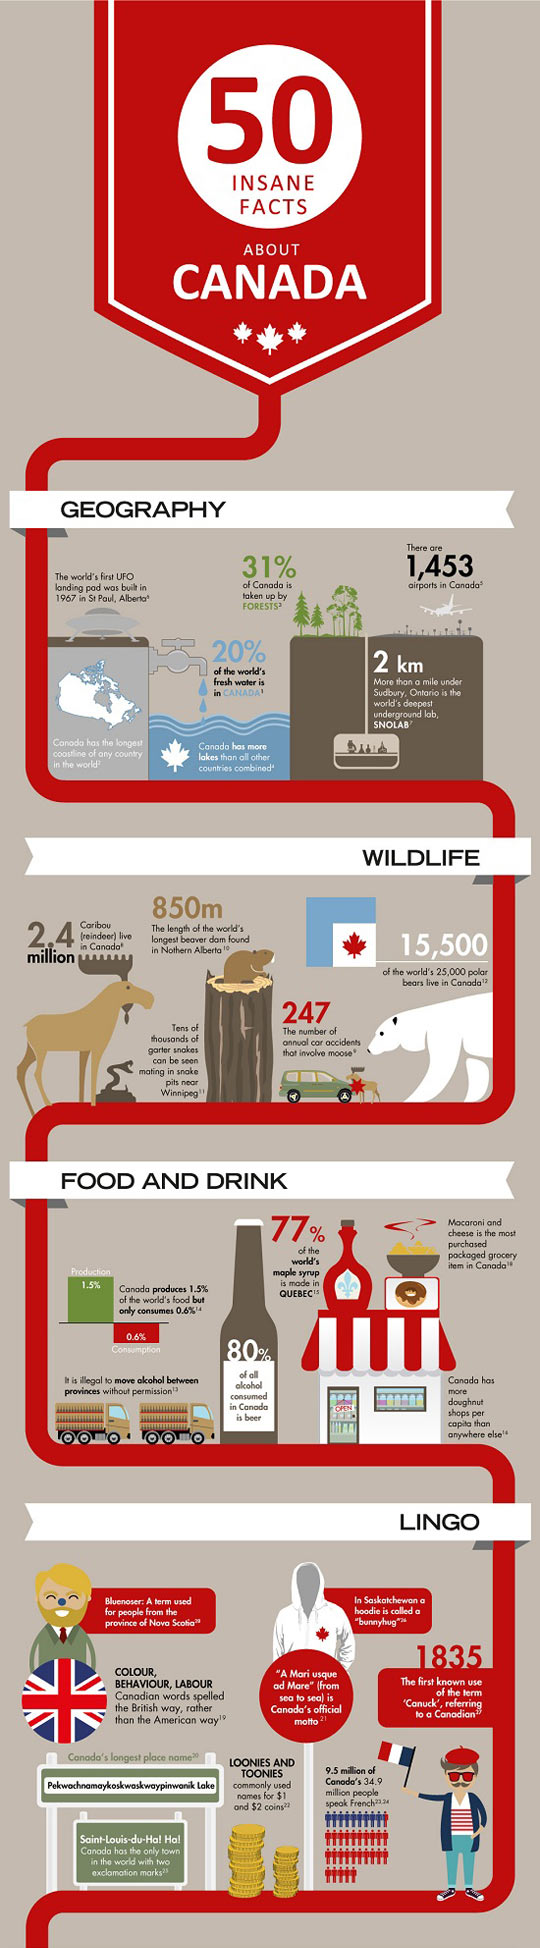 Insane facts about Canada...